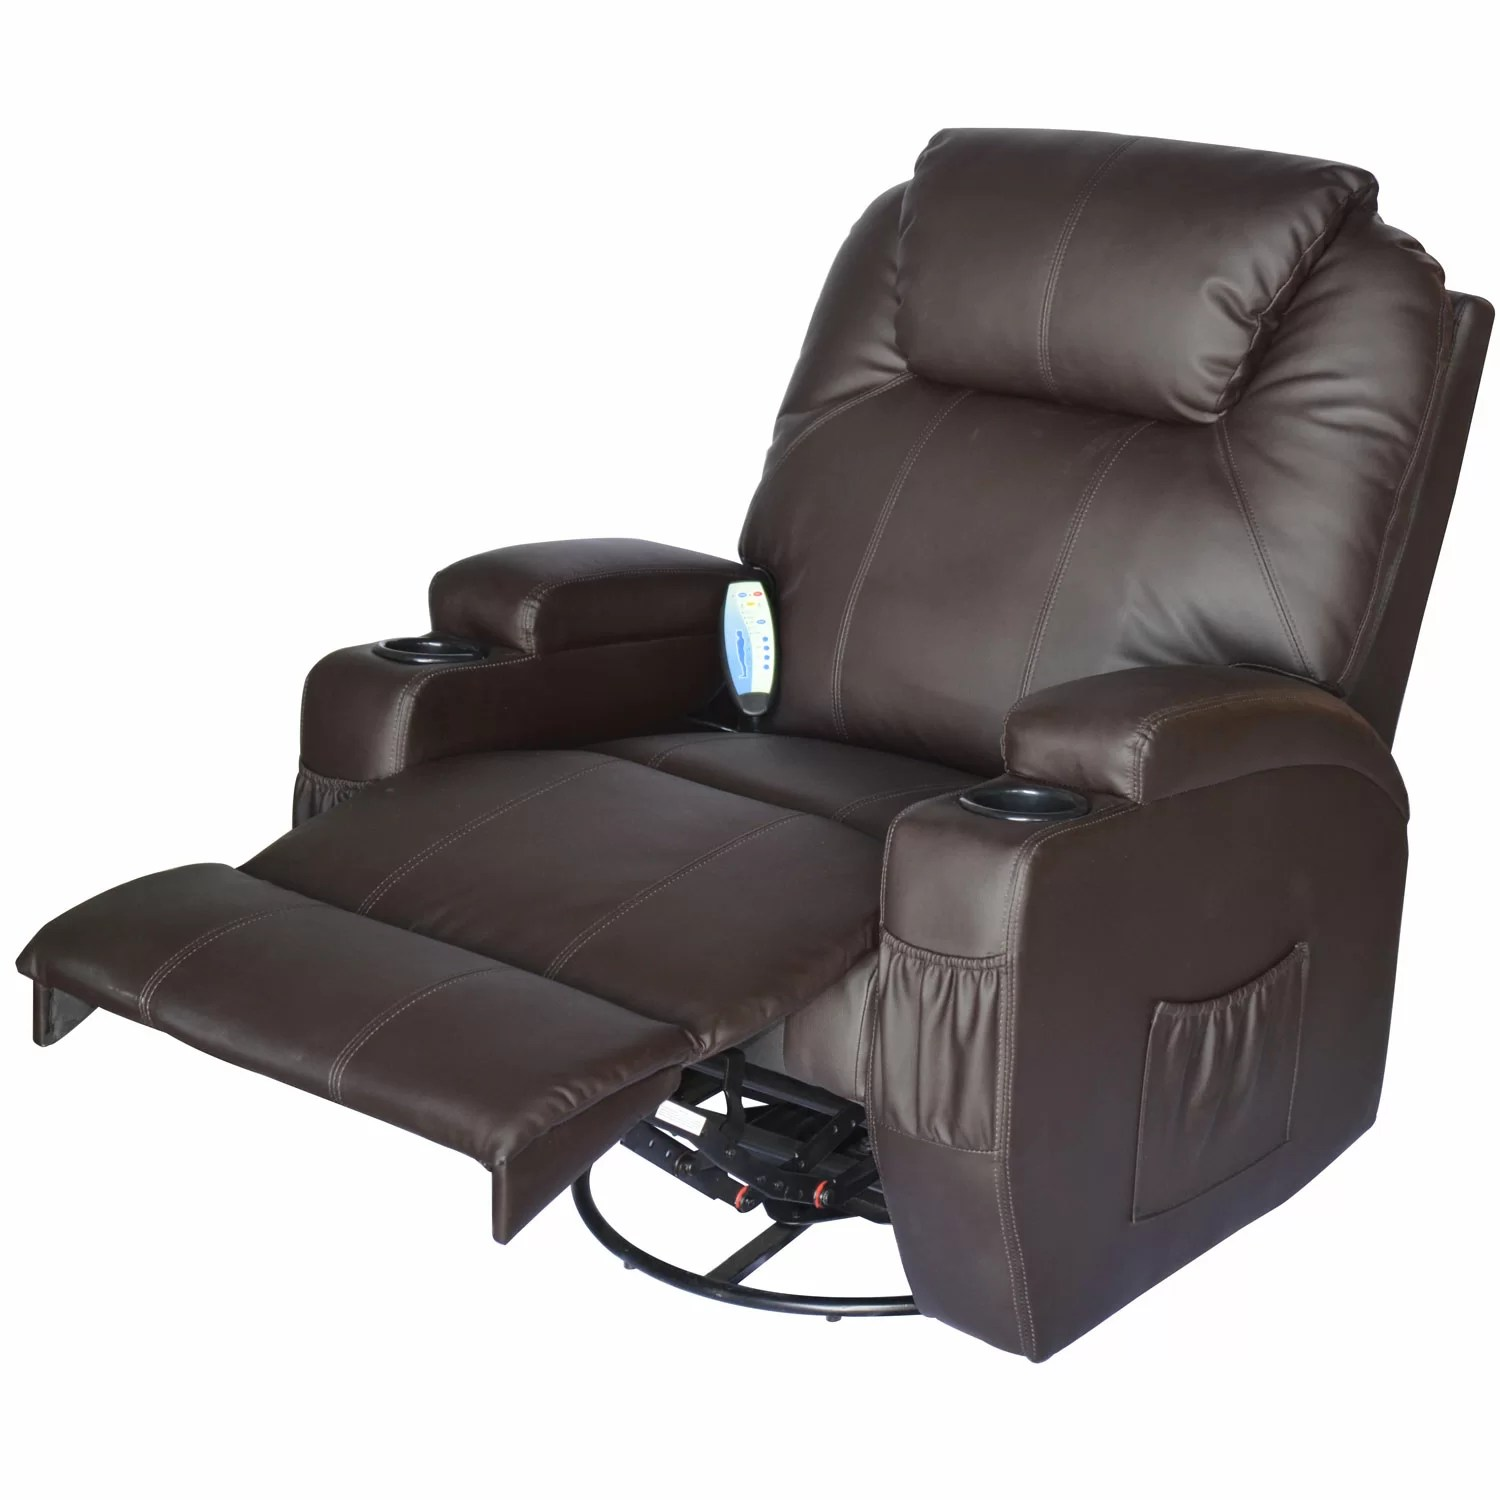 Top Rated Massage Chairs Outsunny Homcom Deluxe Heated Vibrating Vinyl Leather